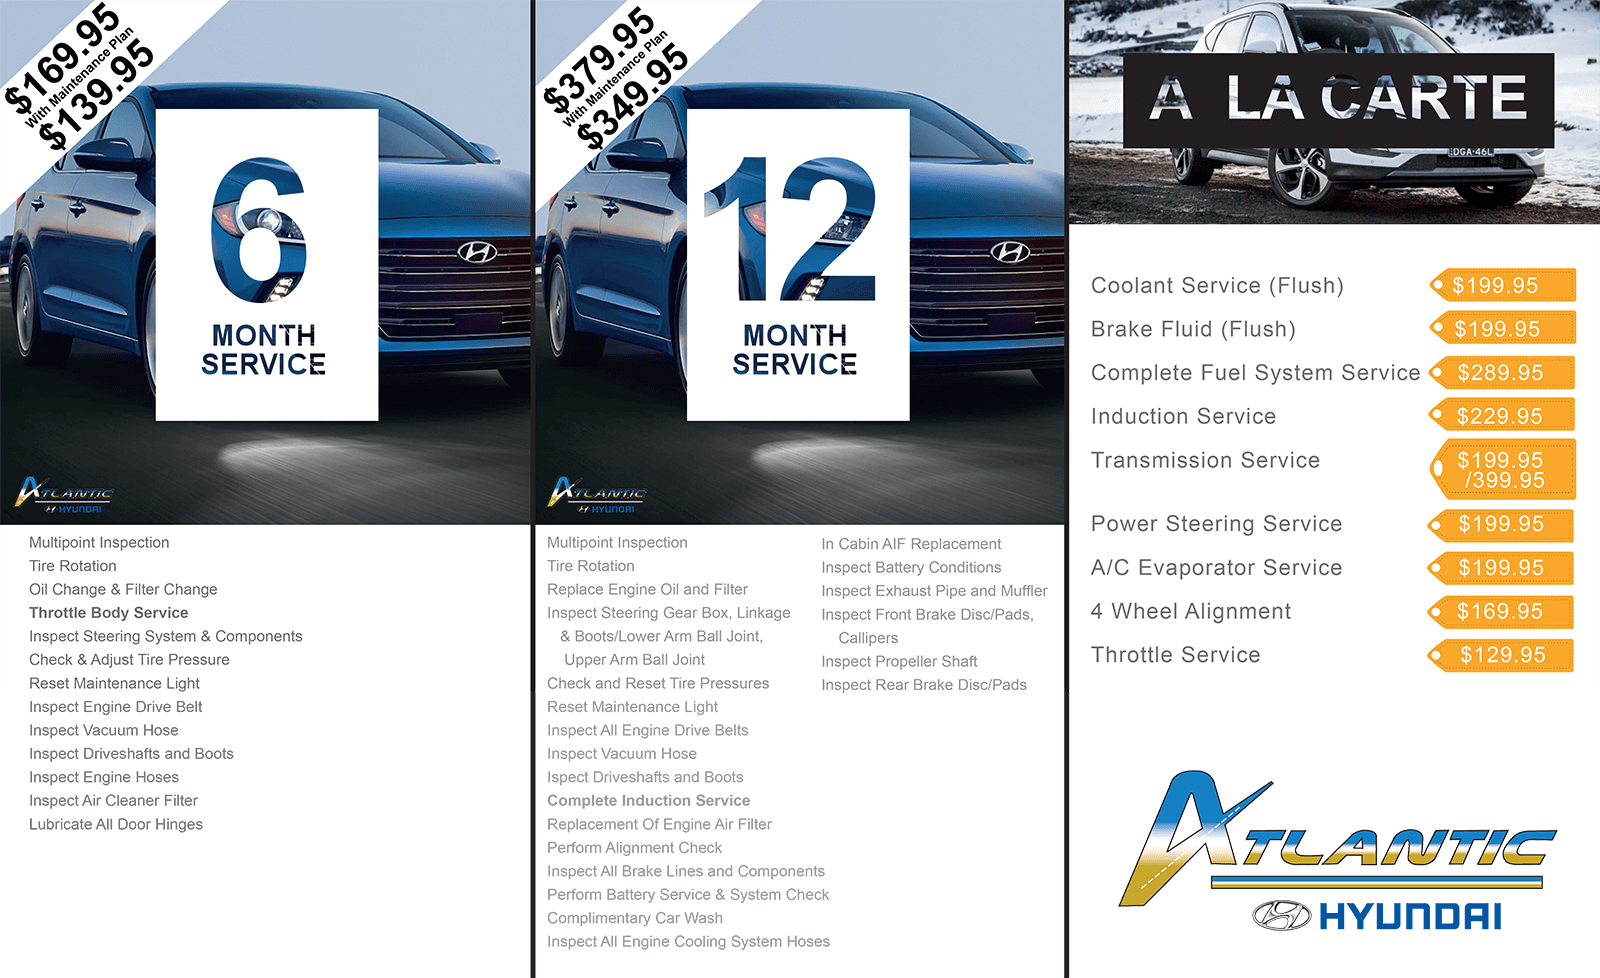 Atlantic Hyundai Service Menu